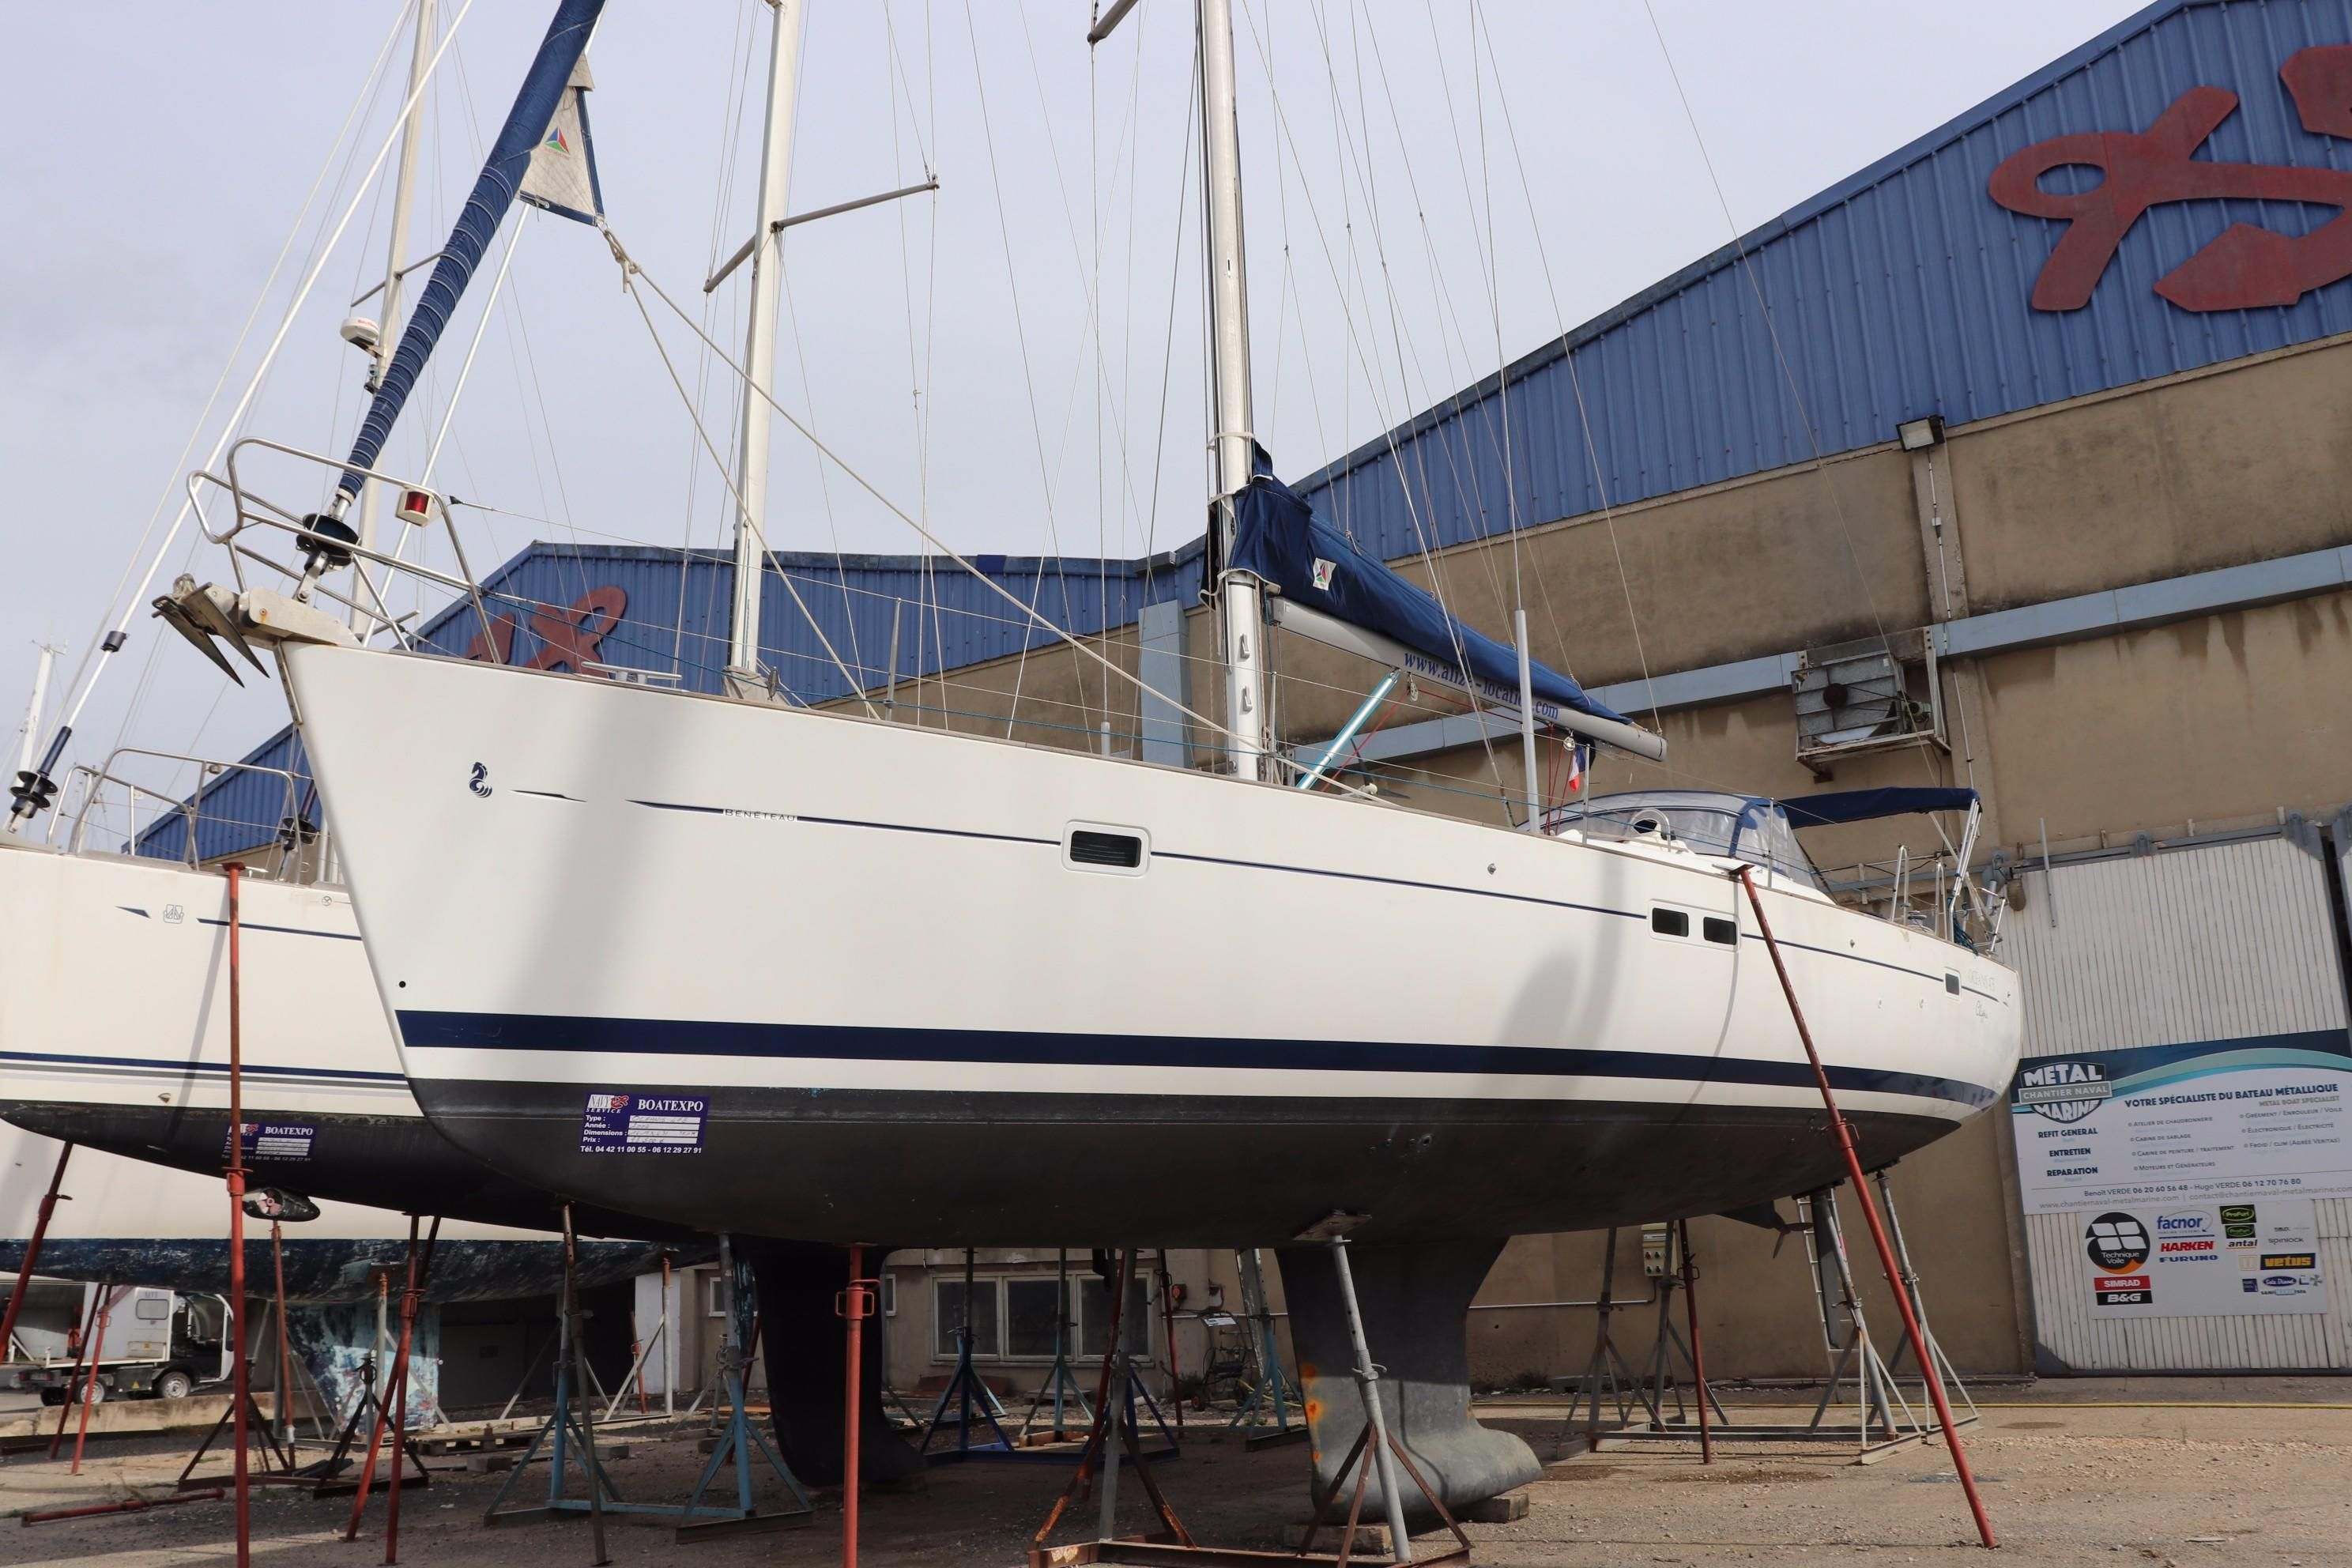 2004 beneteau oceanis 473 sail boat for sale - Navy service port st louis du rhone ...